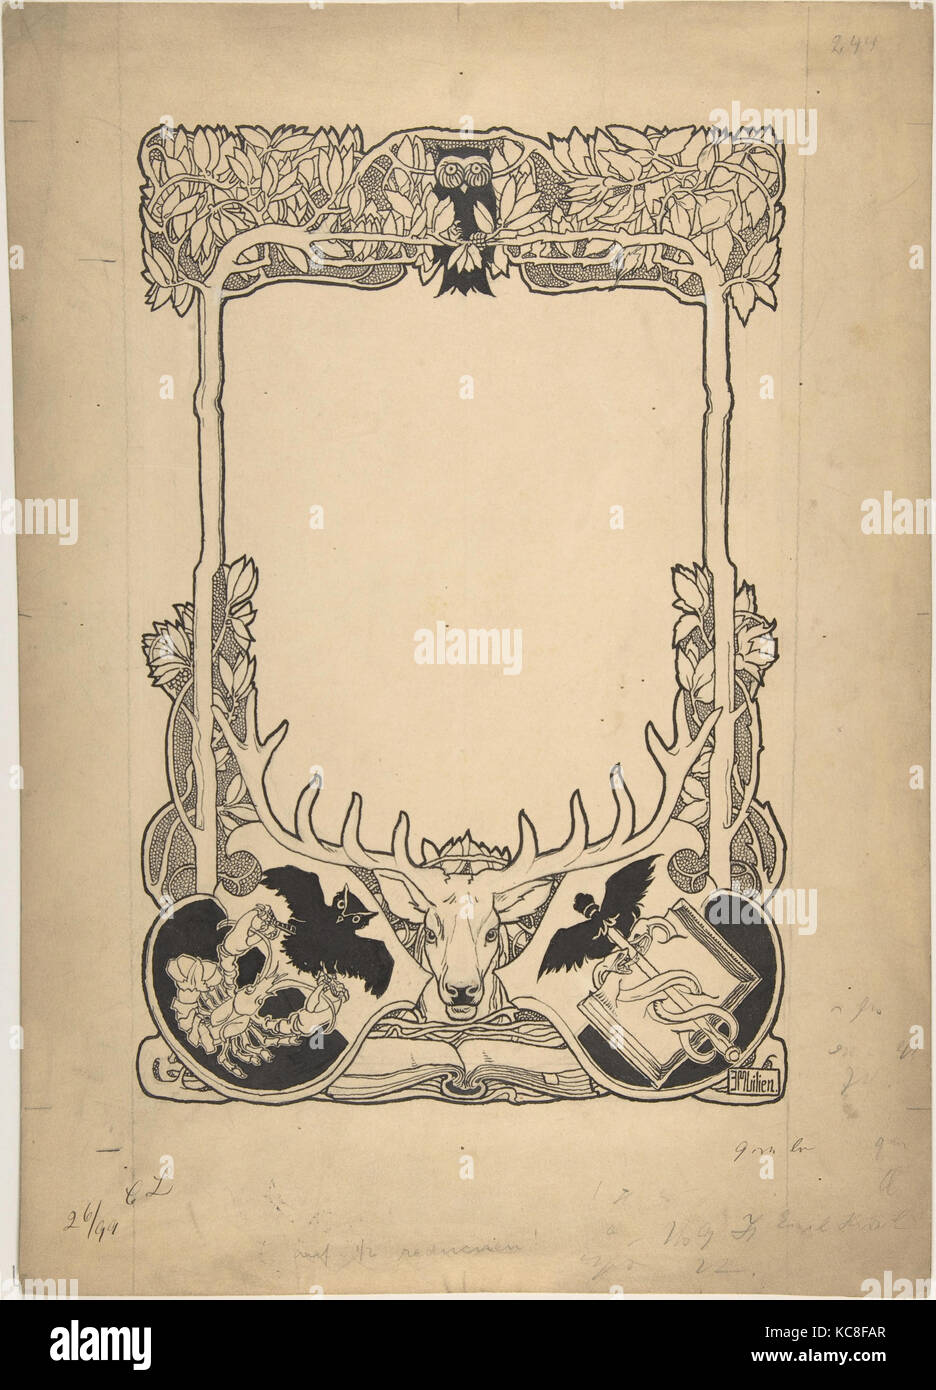 Design for Cover of Book Catalogue of Emil Hirsh, Munich, Ephraim Mose Lilien, late 19th–early 20th century - Stock Image